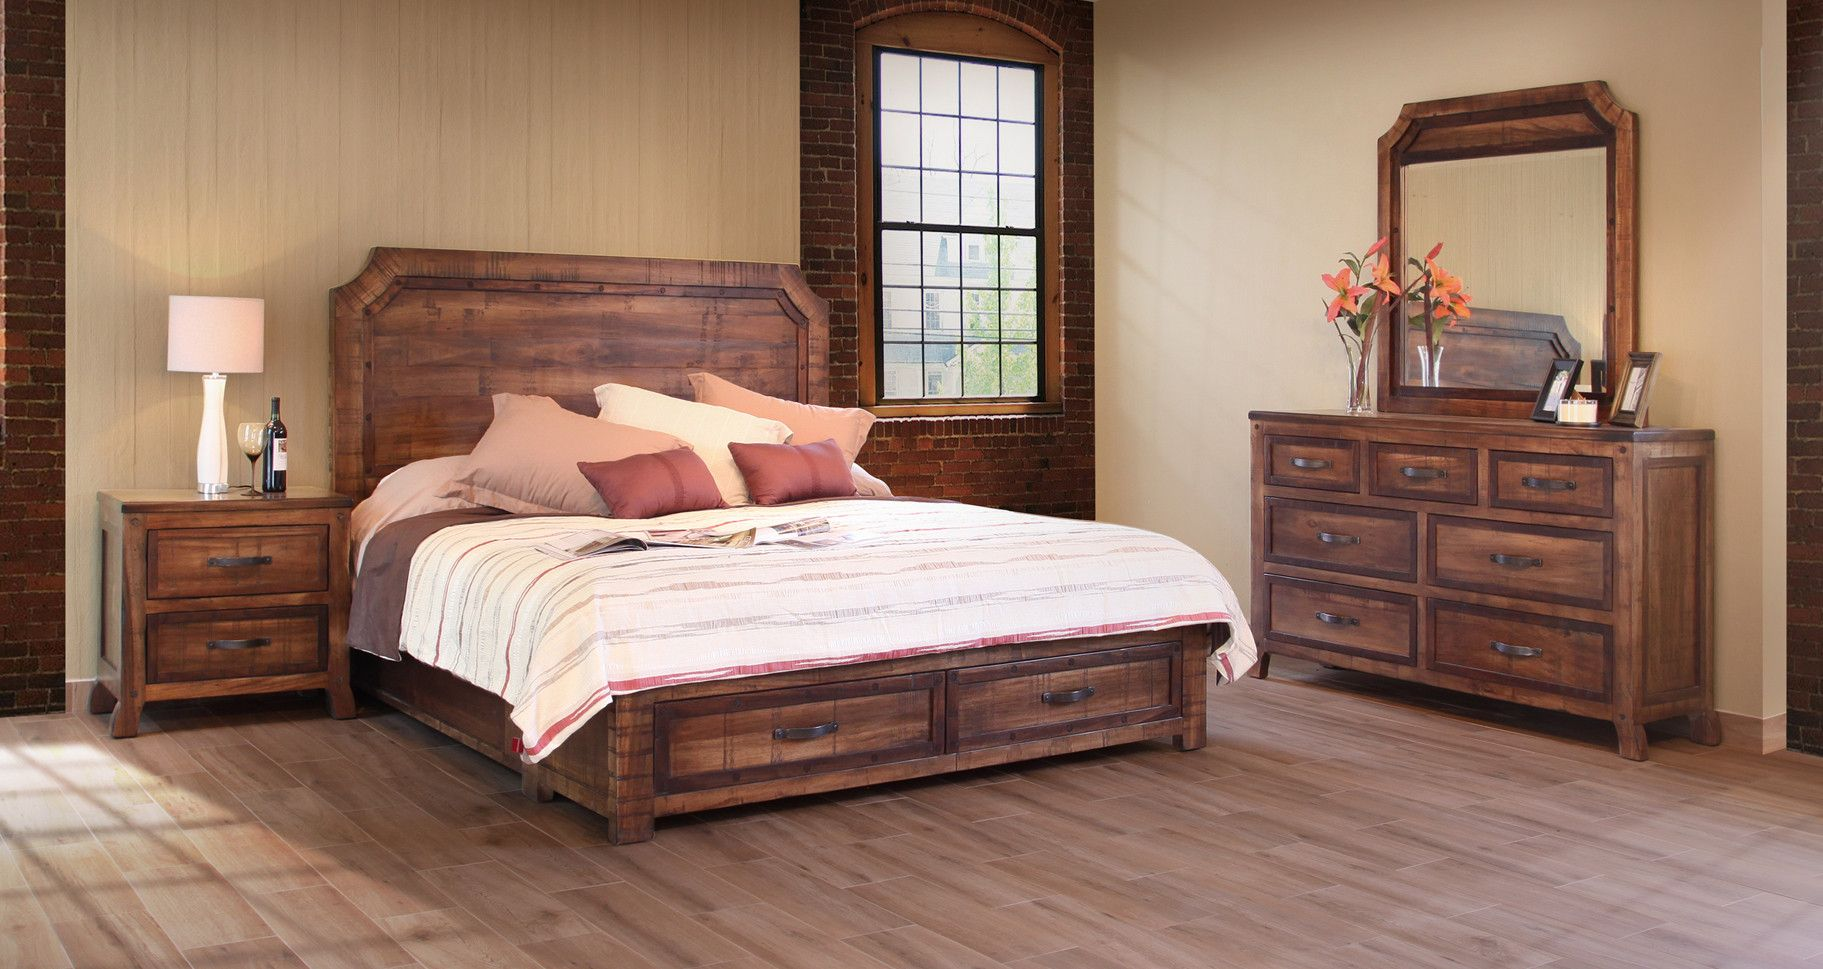 Adironack Bedroom Suite Rustic Bedroom Furniture Bedroom Sets